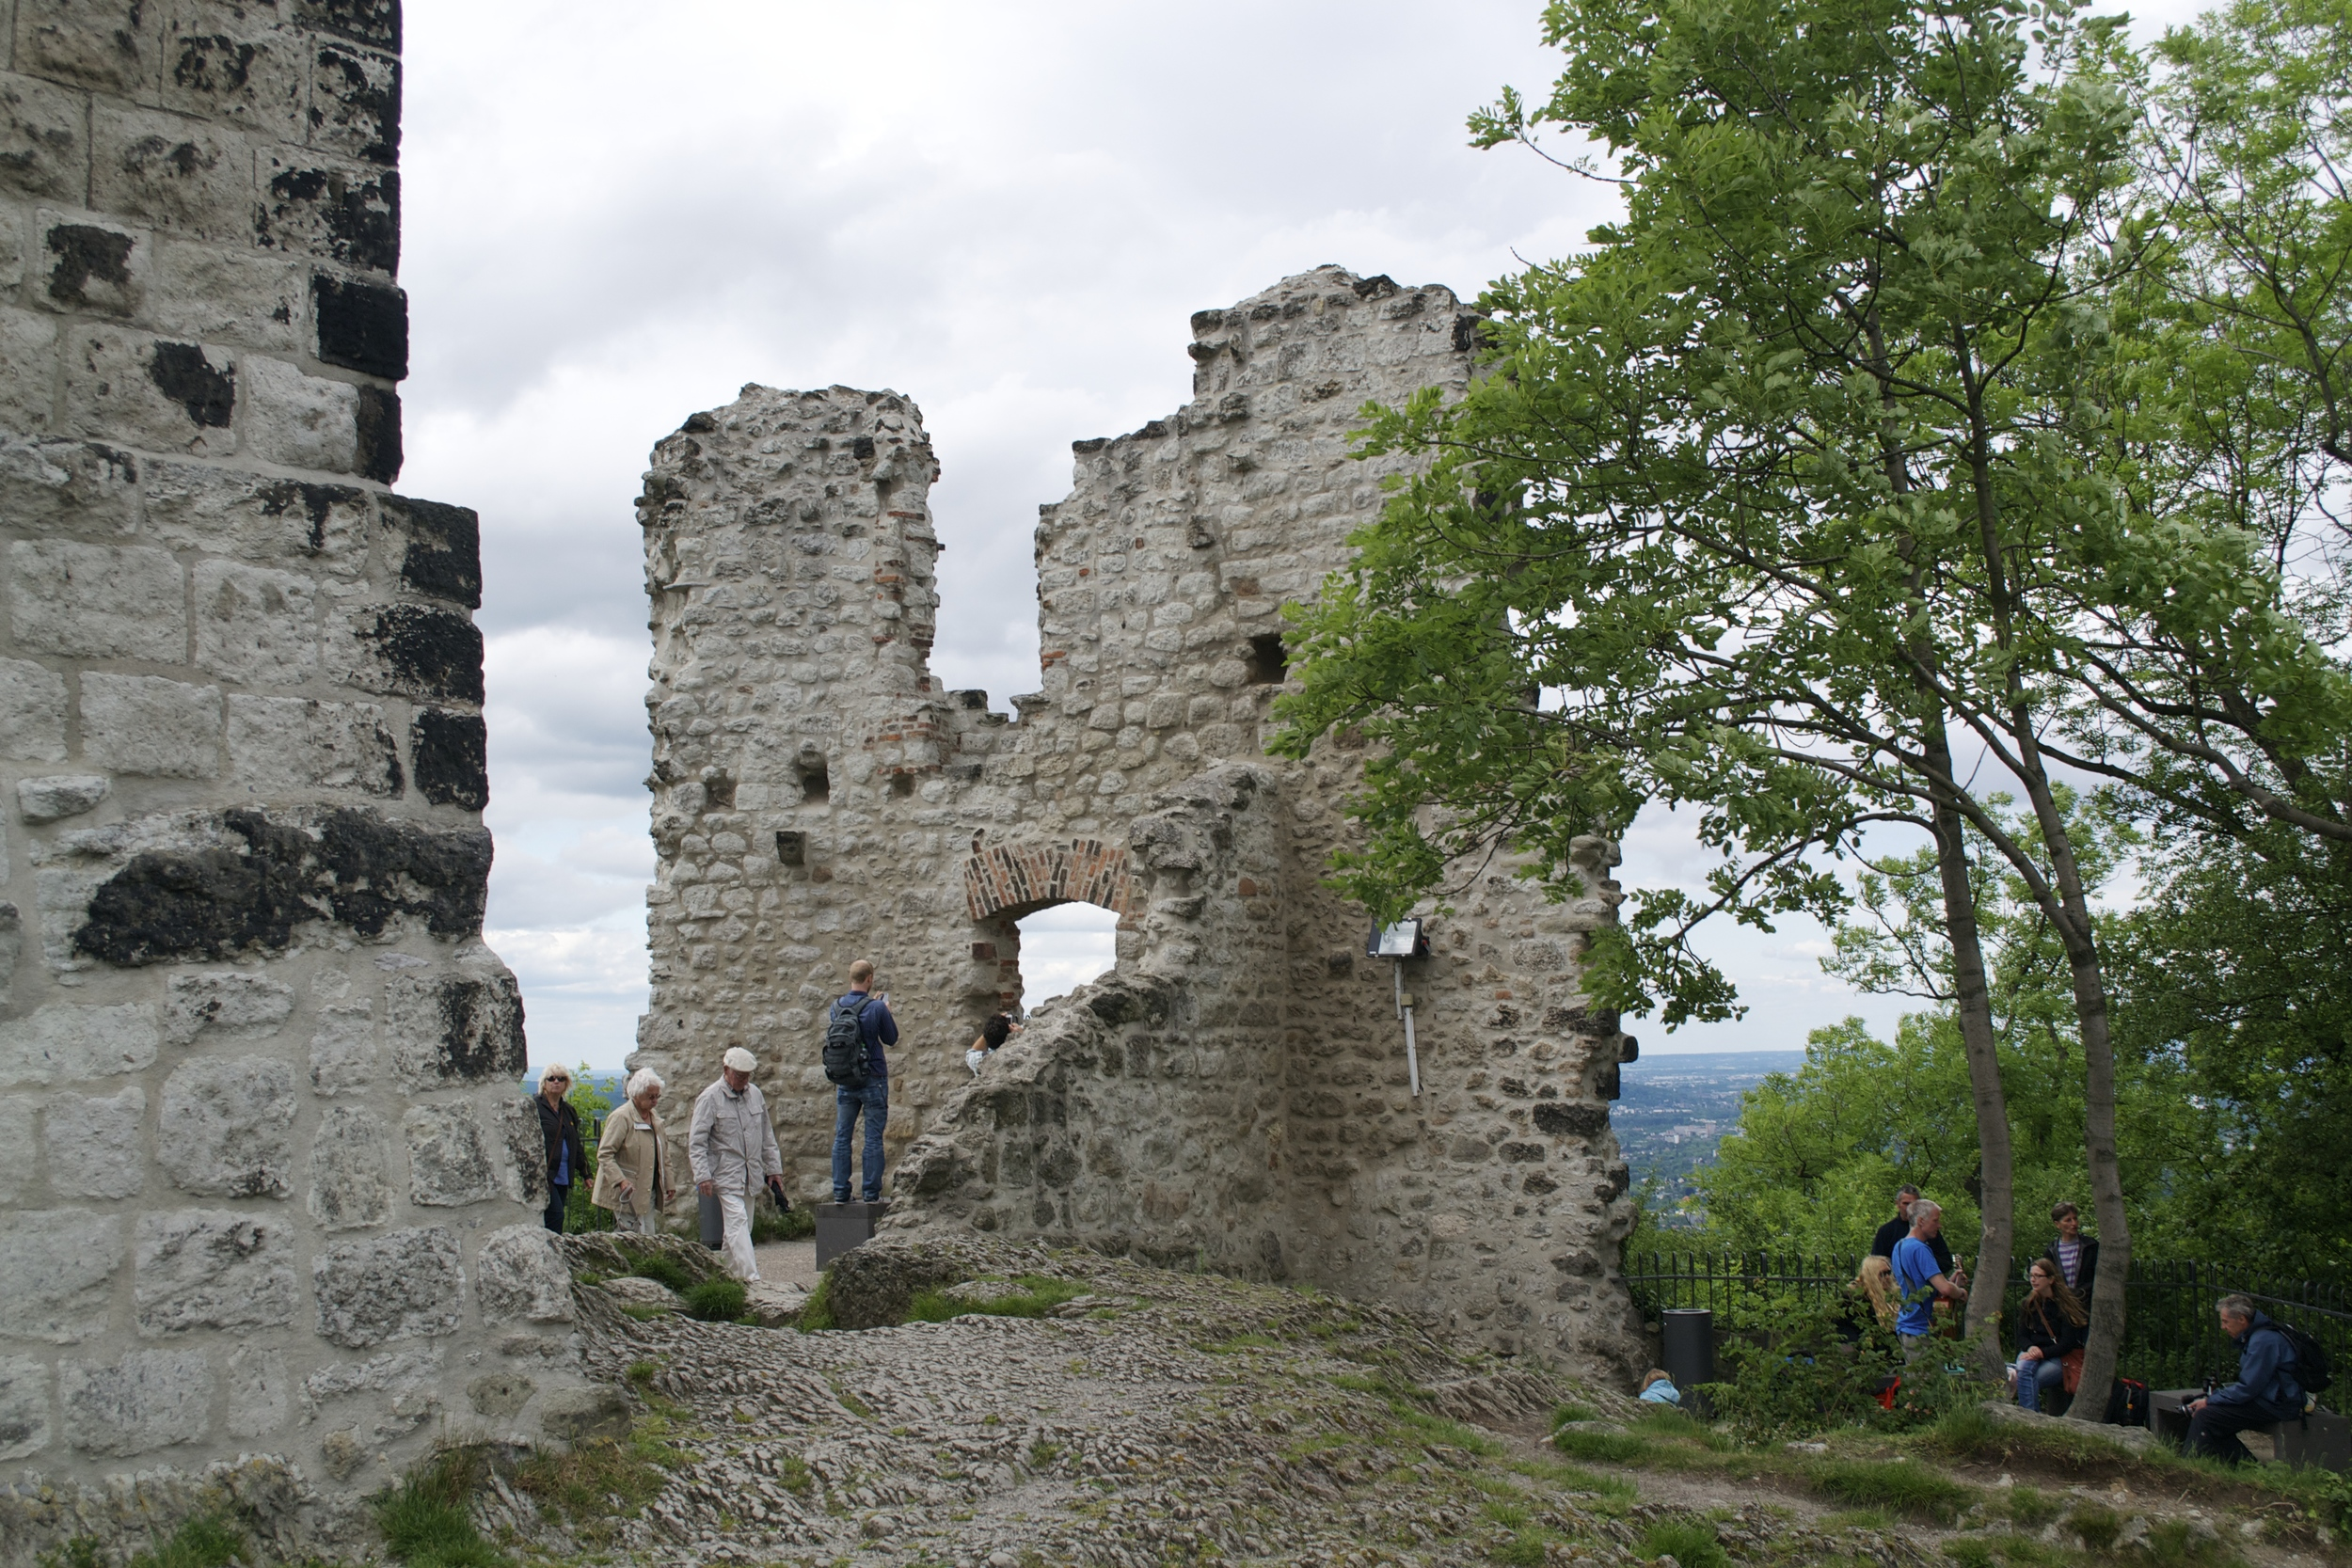 The ruins of Burg Drachenfels.